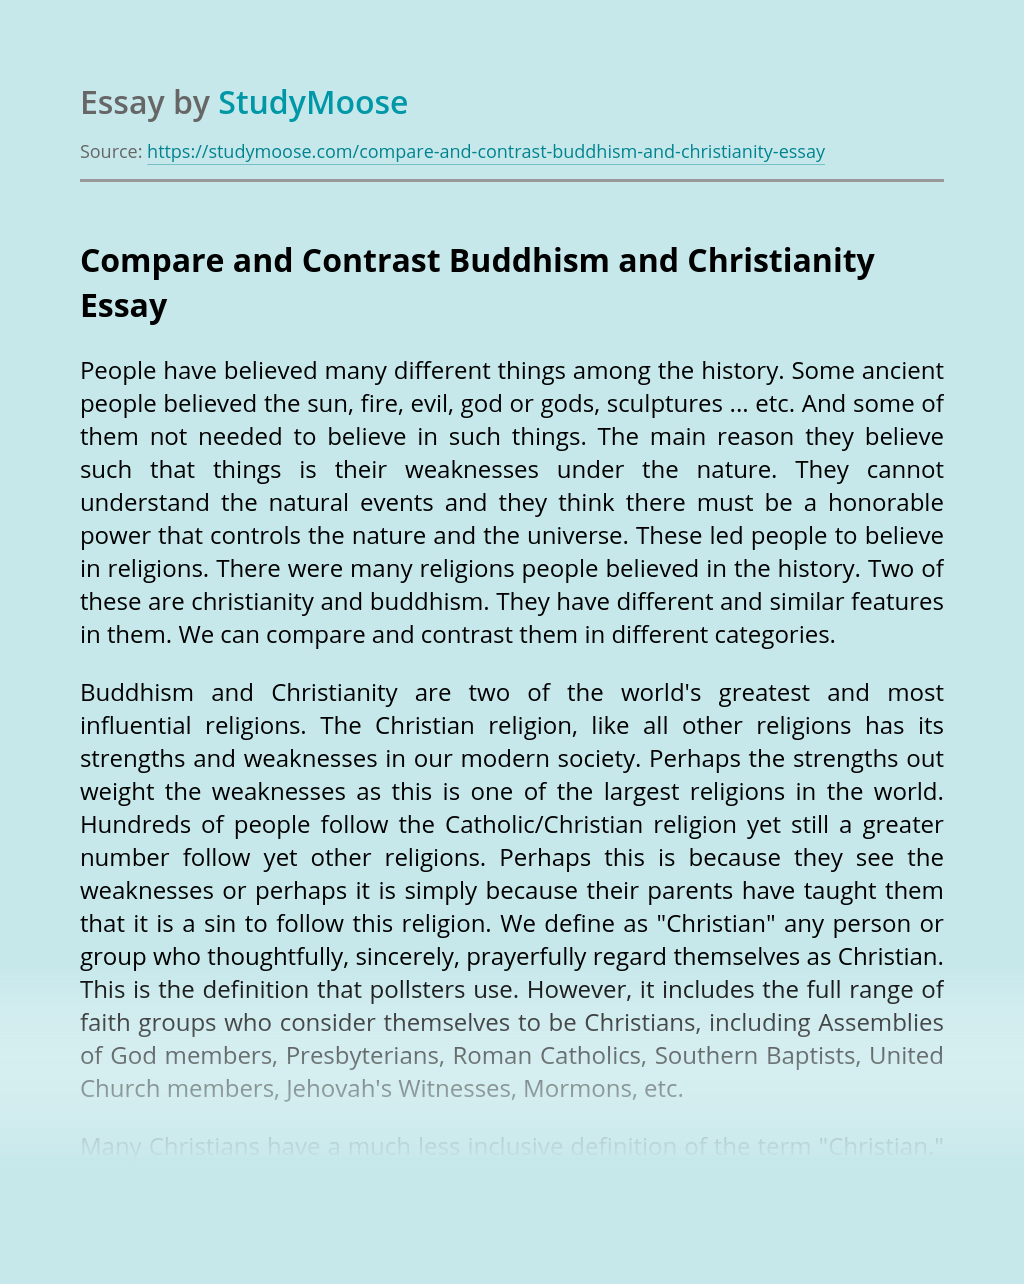 Compare and Contrast Buddhism and Christianity